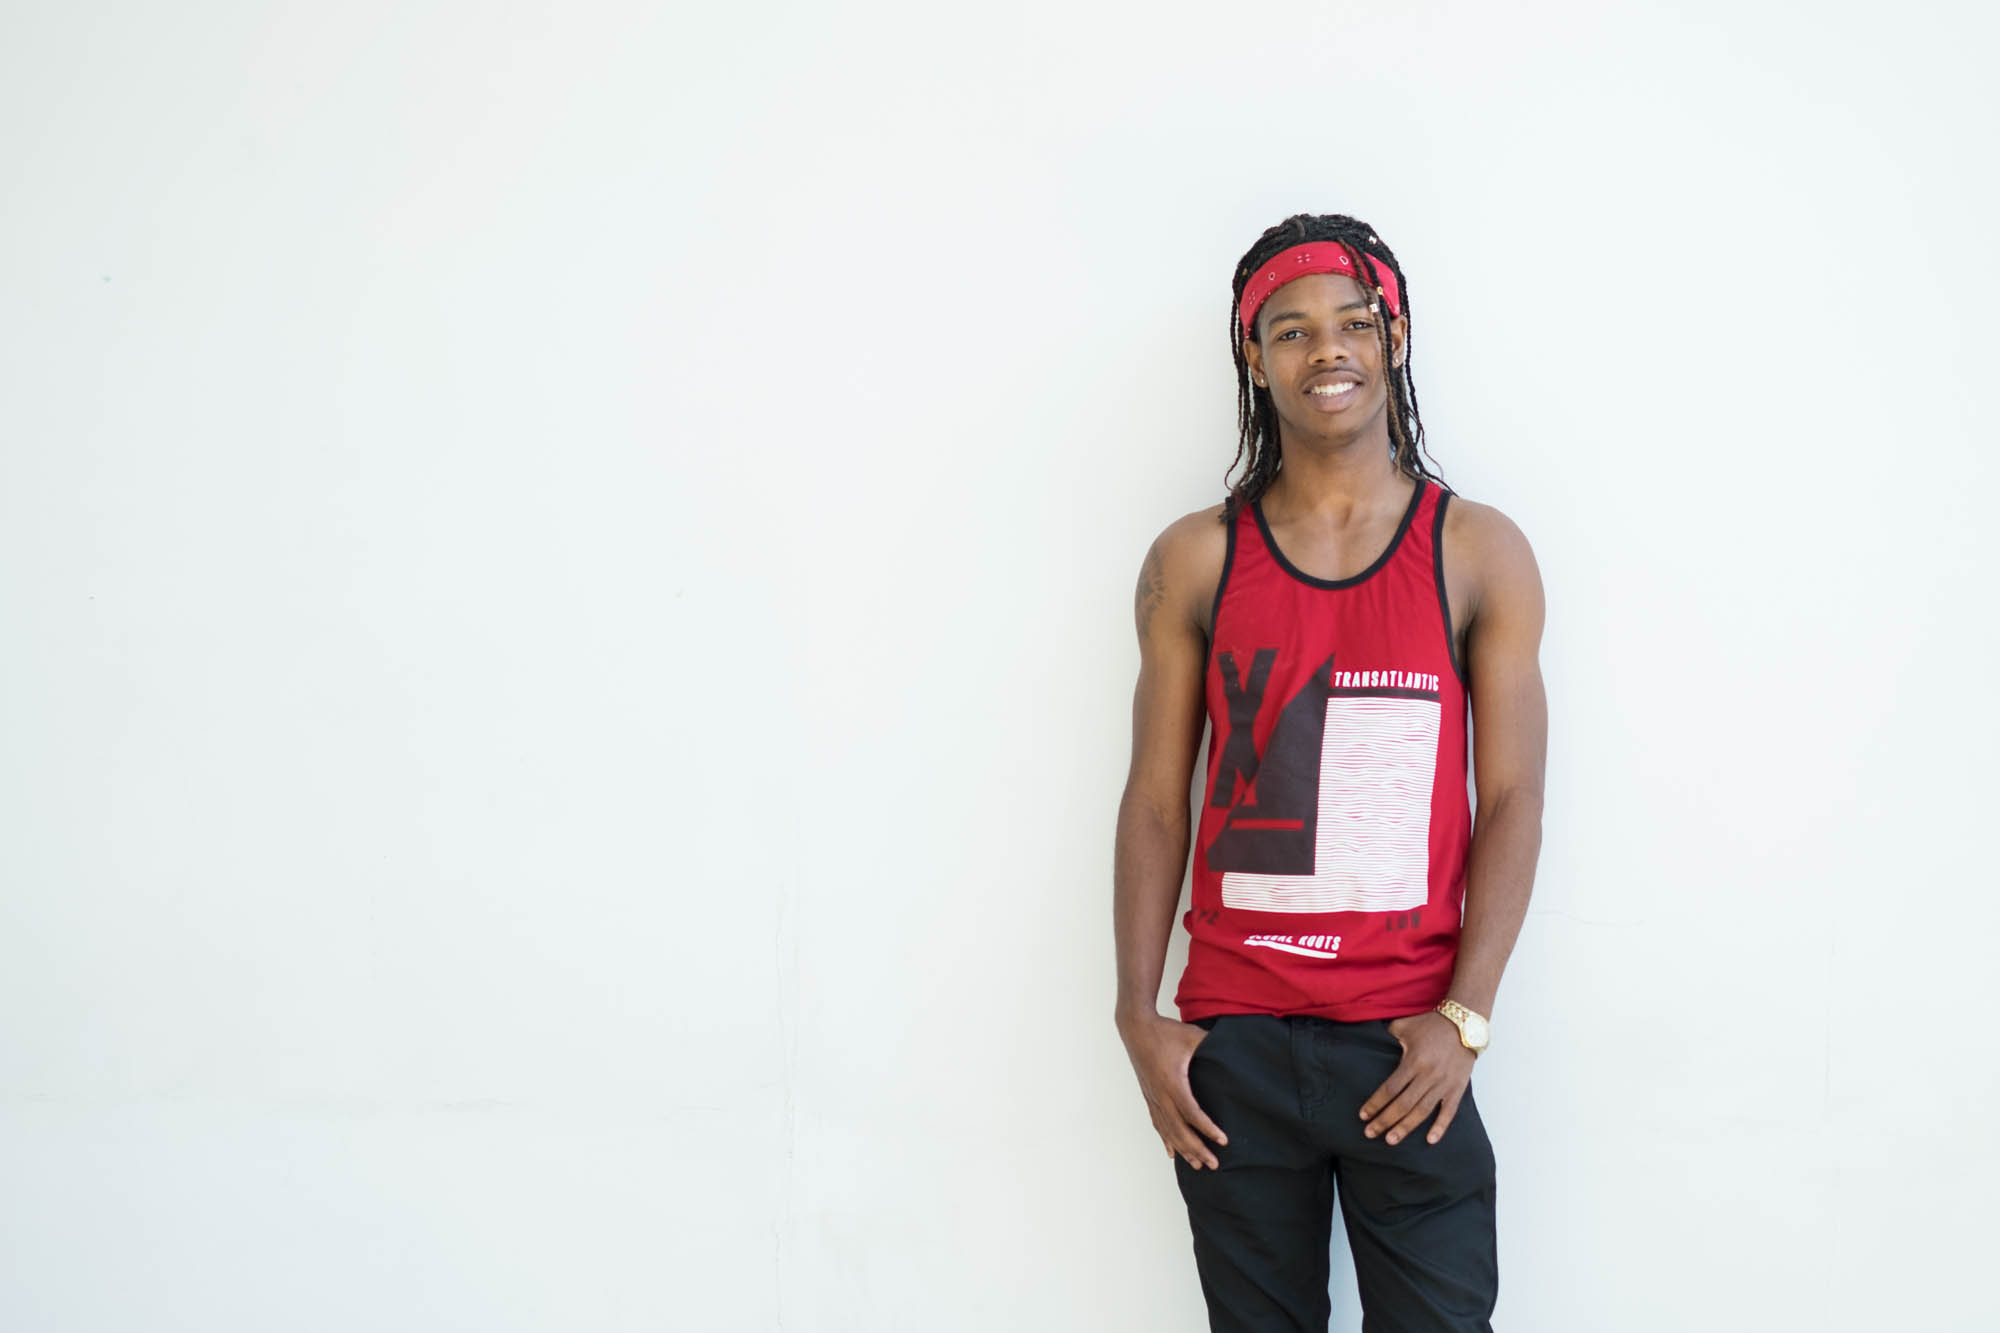 Justin standing against a white background with their hands in their pockets. Justin is wearing a red tank top with black and white screen print, black pants, and a red head band. Justin has braided hair and is smiling at the camera.